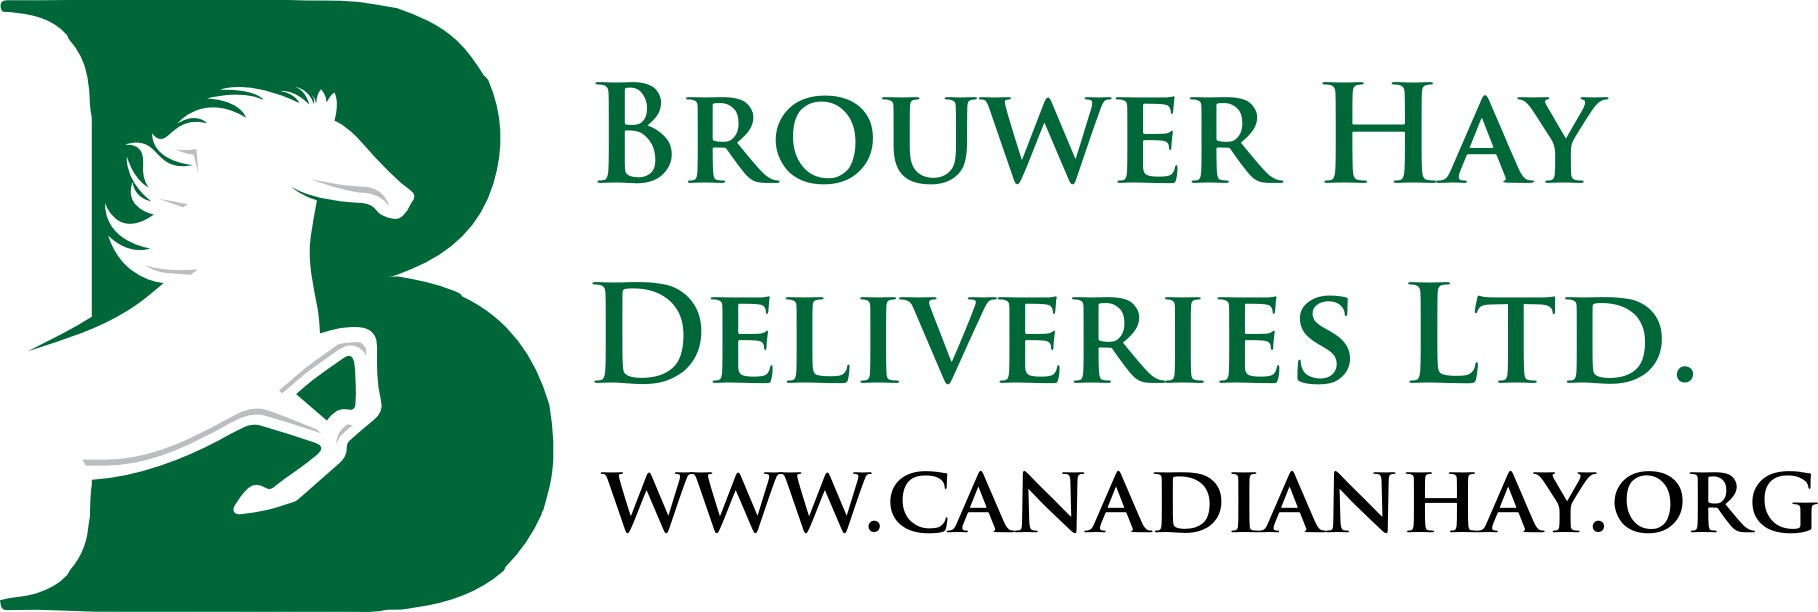 Brouwer Hay Deliveries Ltd.